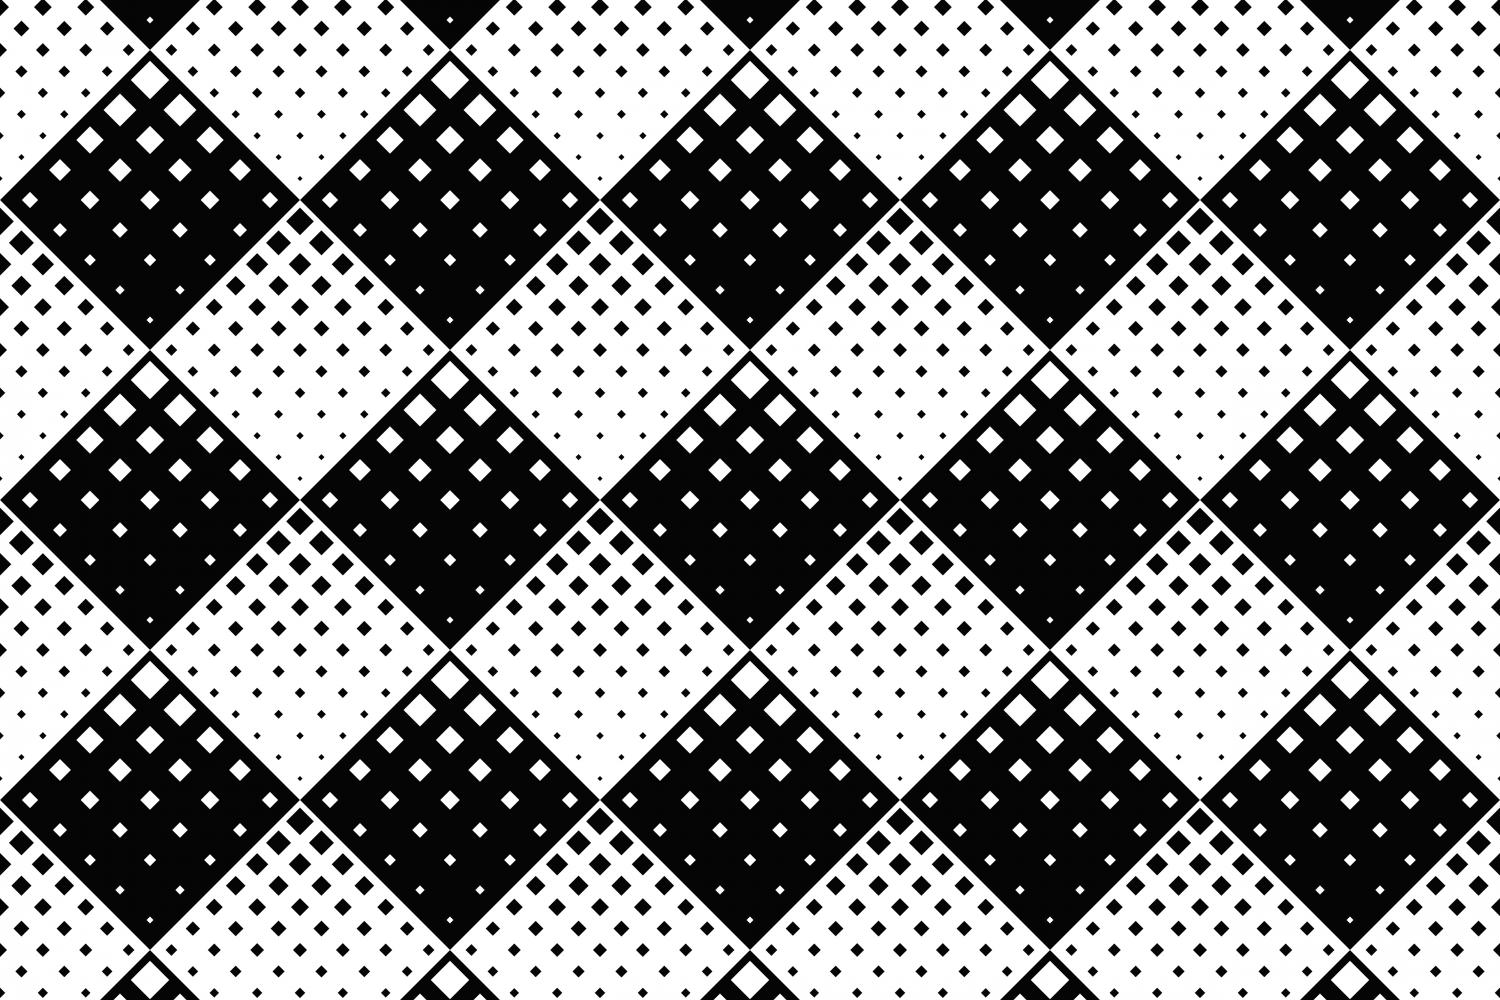 24 Seamless Square Patterns example image 23